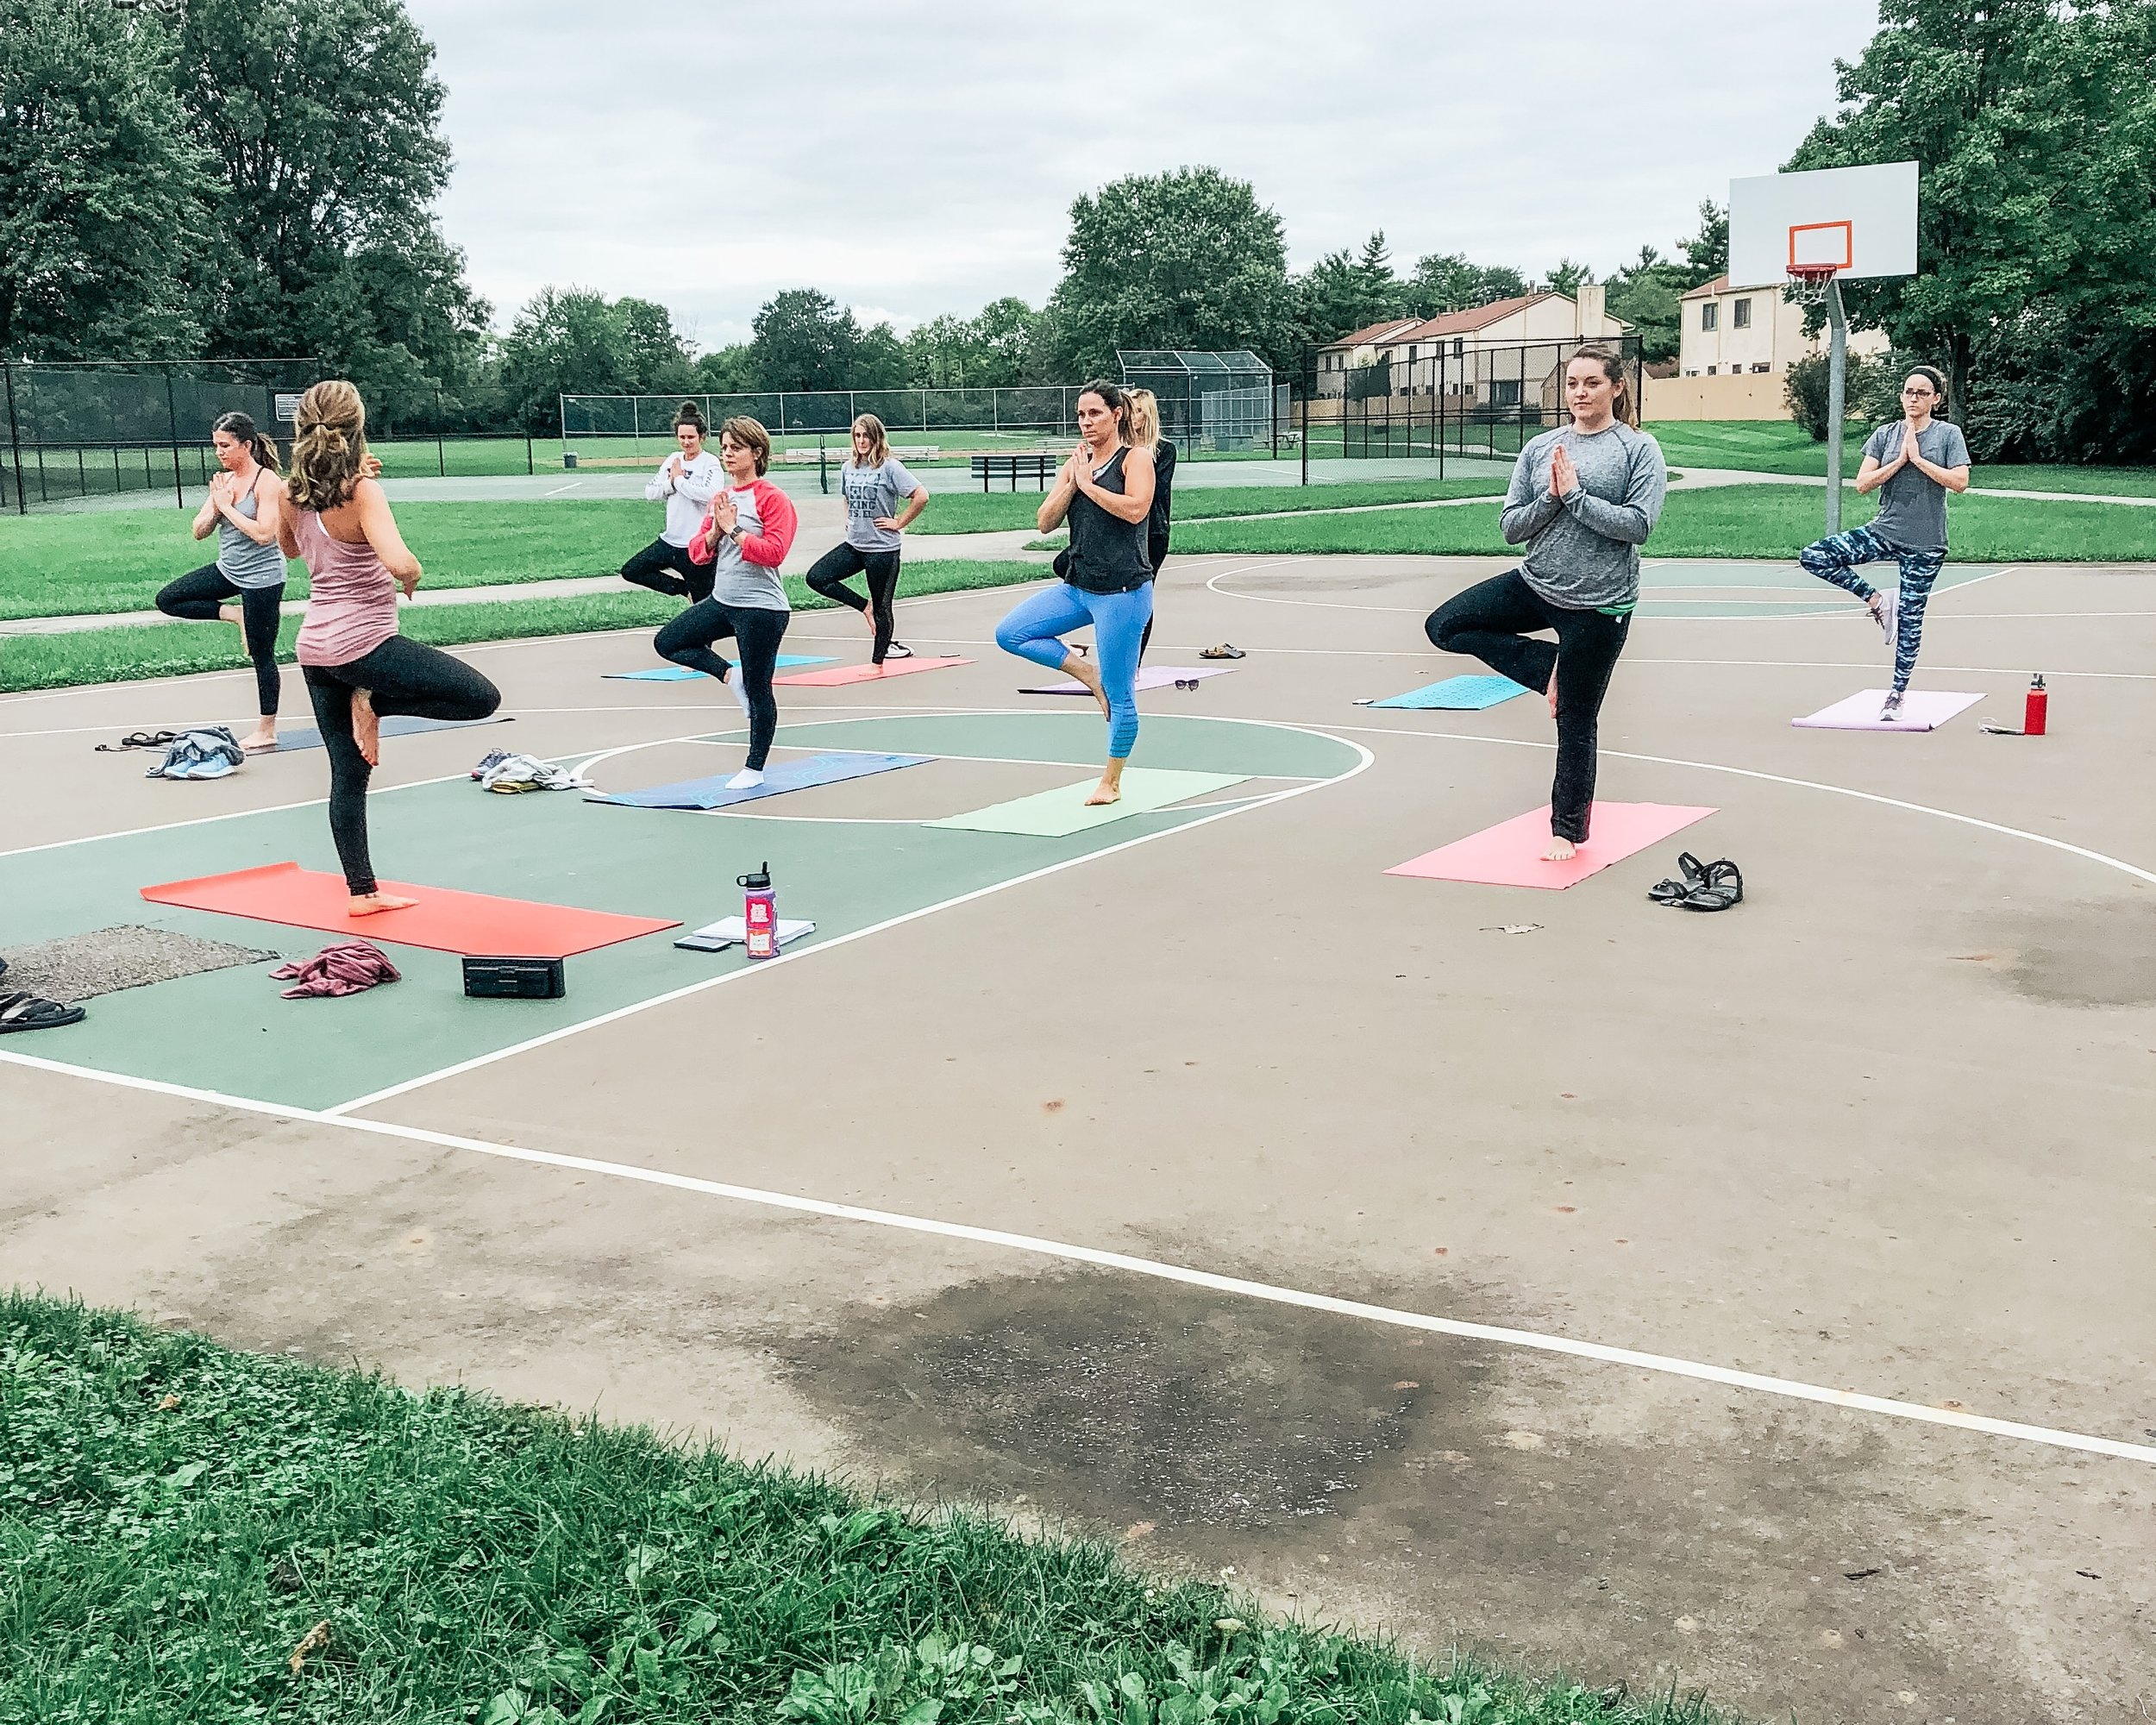 Short, effective workouts - Our workouts are offered in the evenings while the childcare centers are still open, are only 30 minutes long, and pack a big punch for maximum impact.